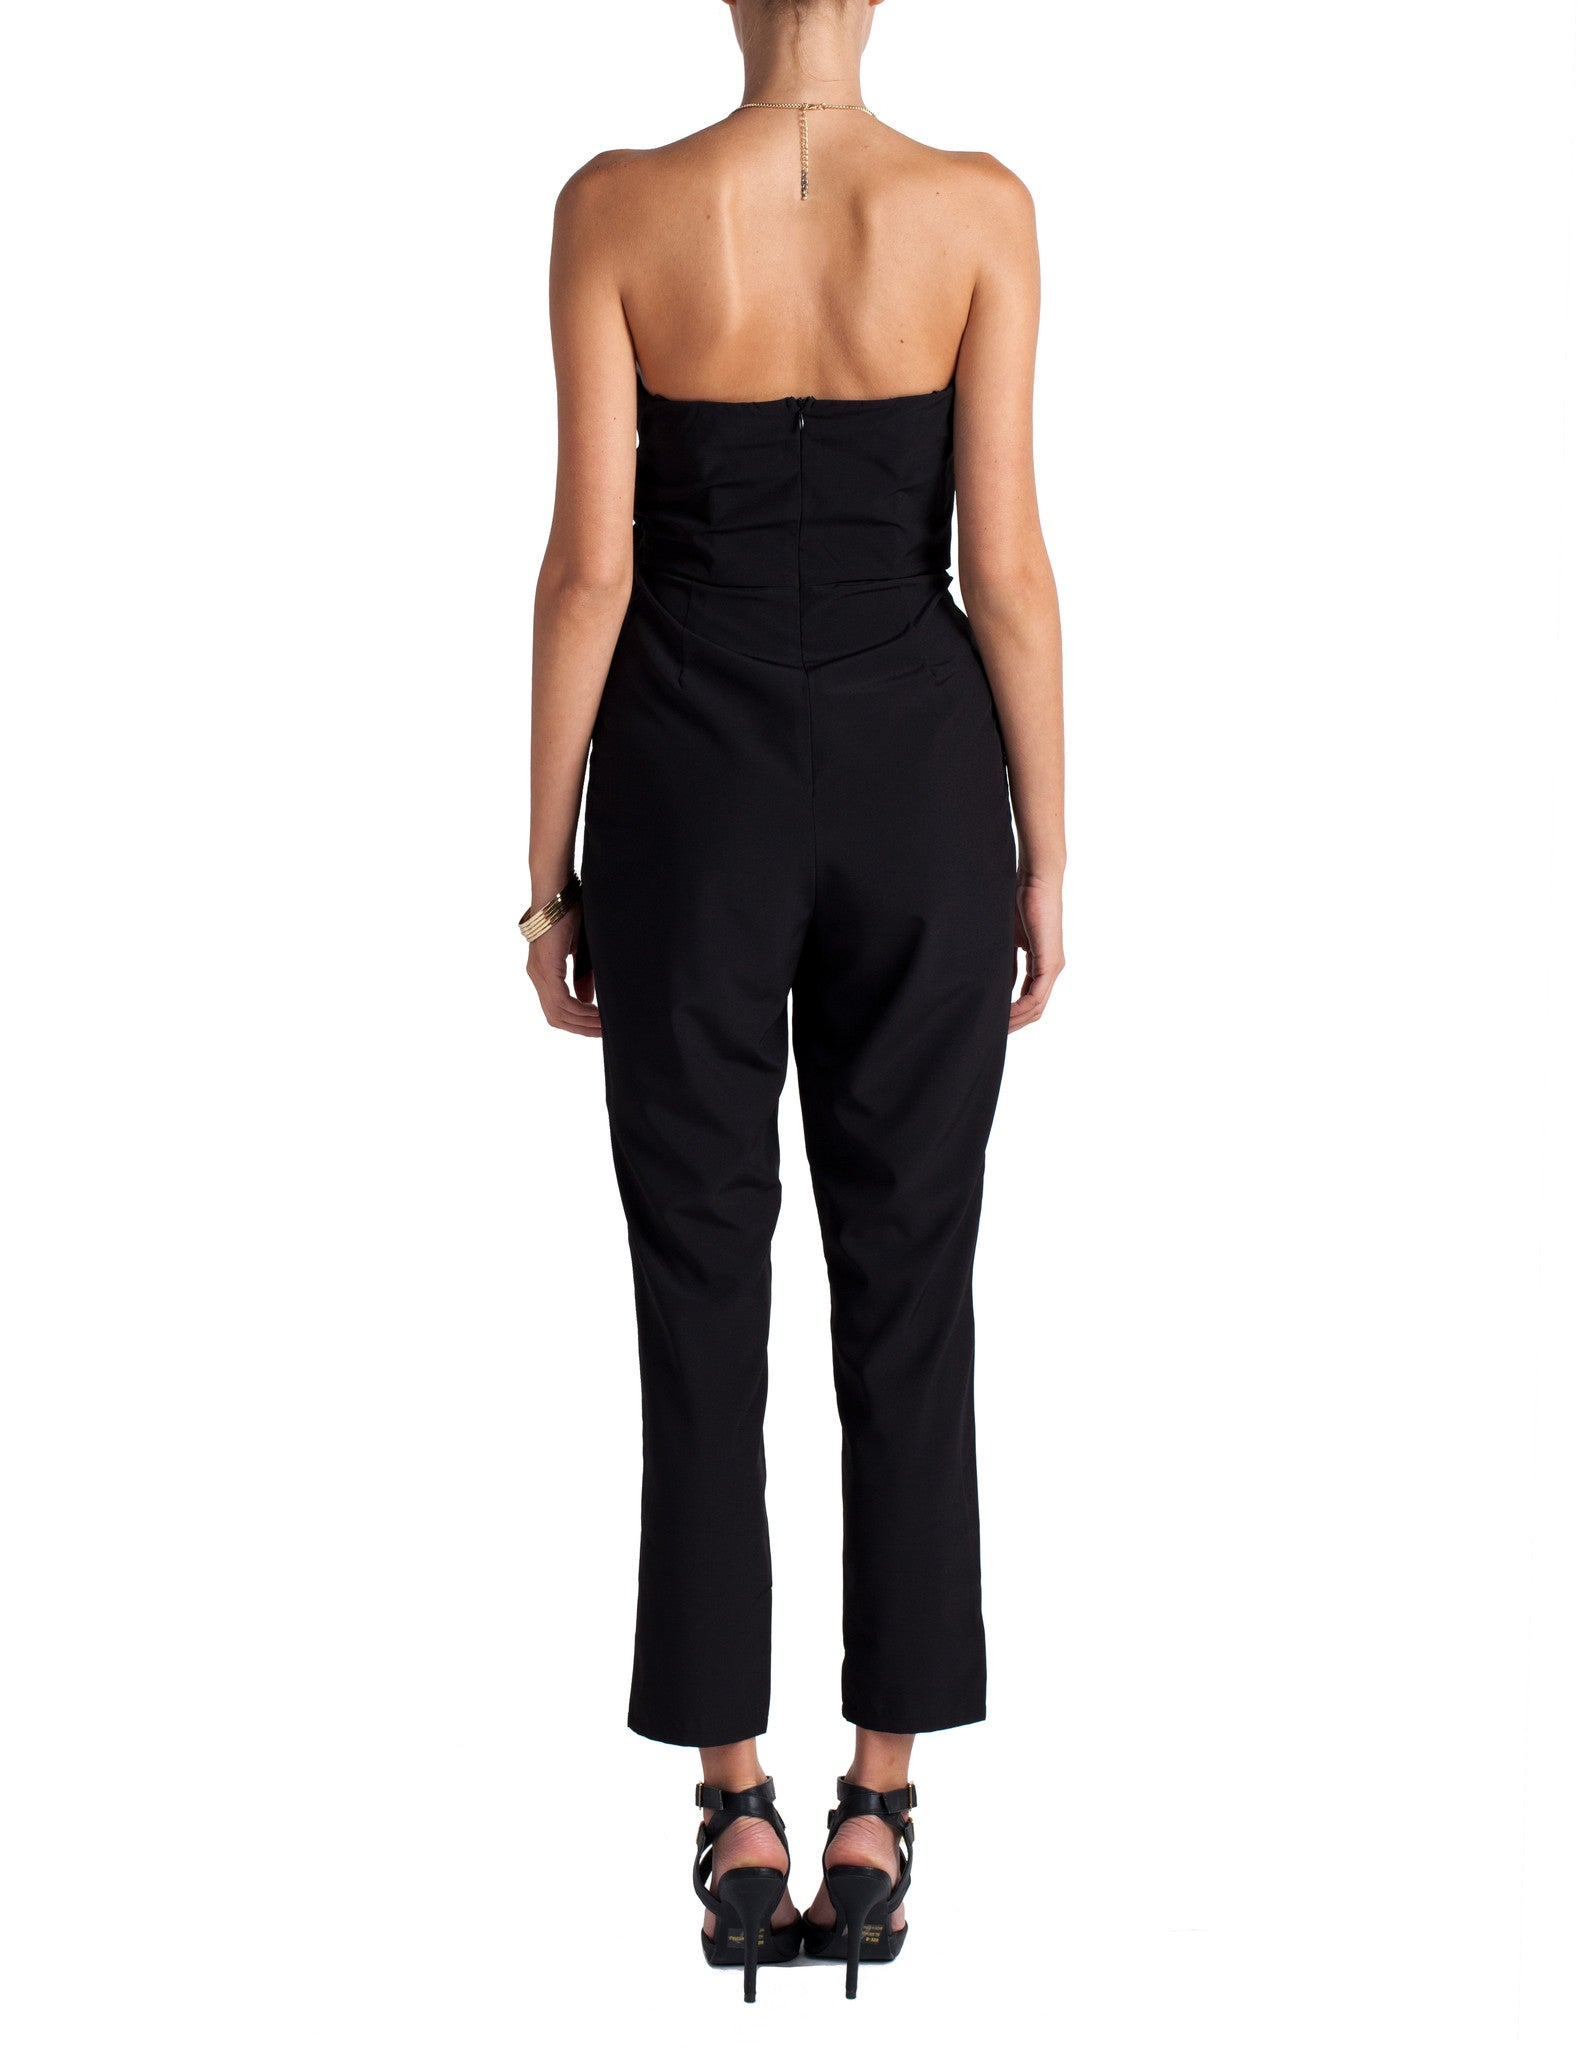 Strapless Side Tie Jumpsuit